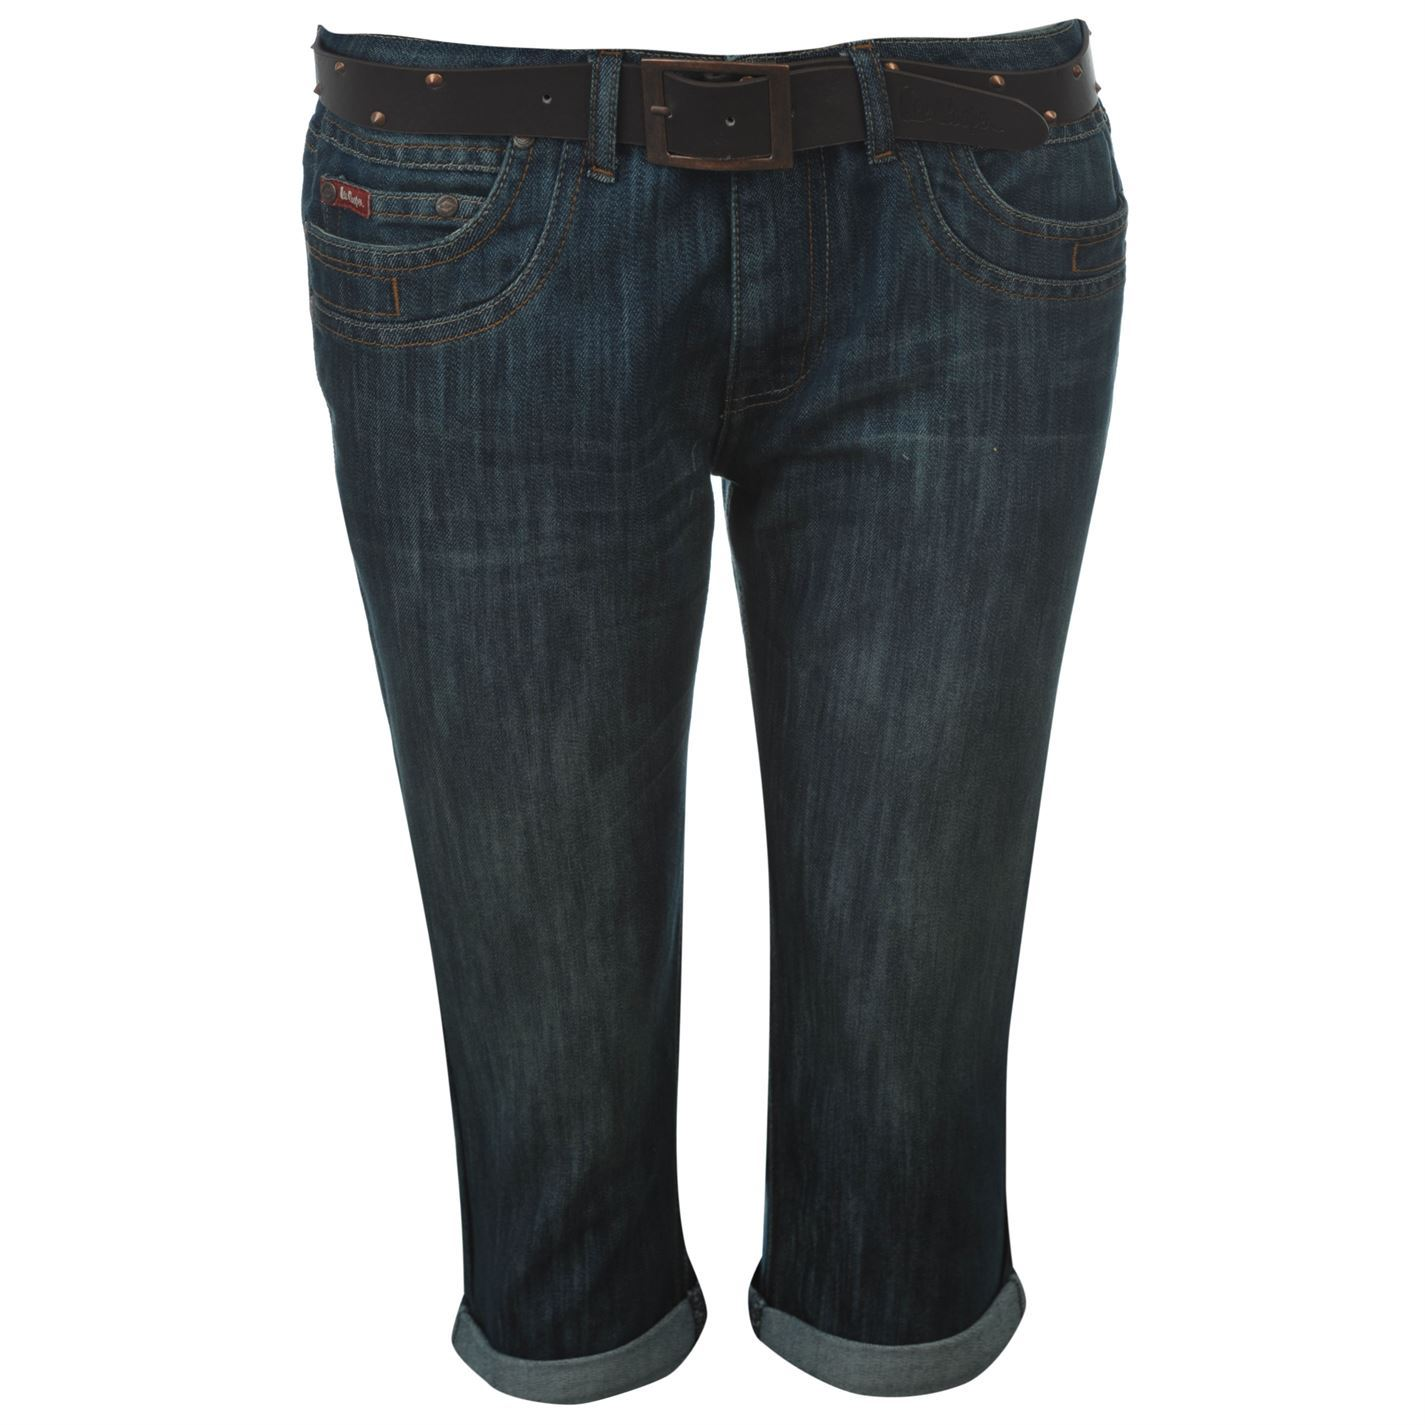 lee cooper jeans for women - photo #27